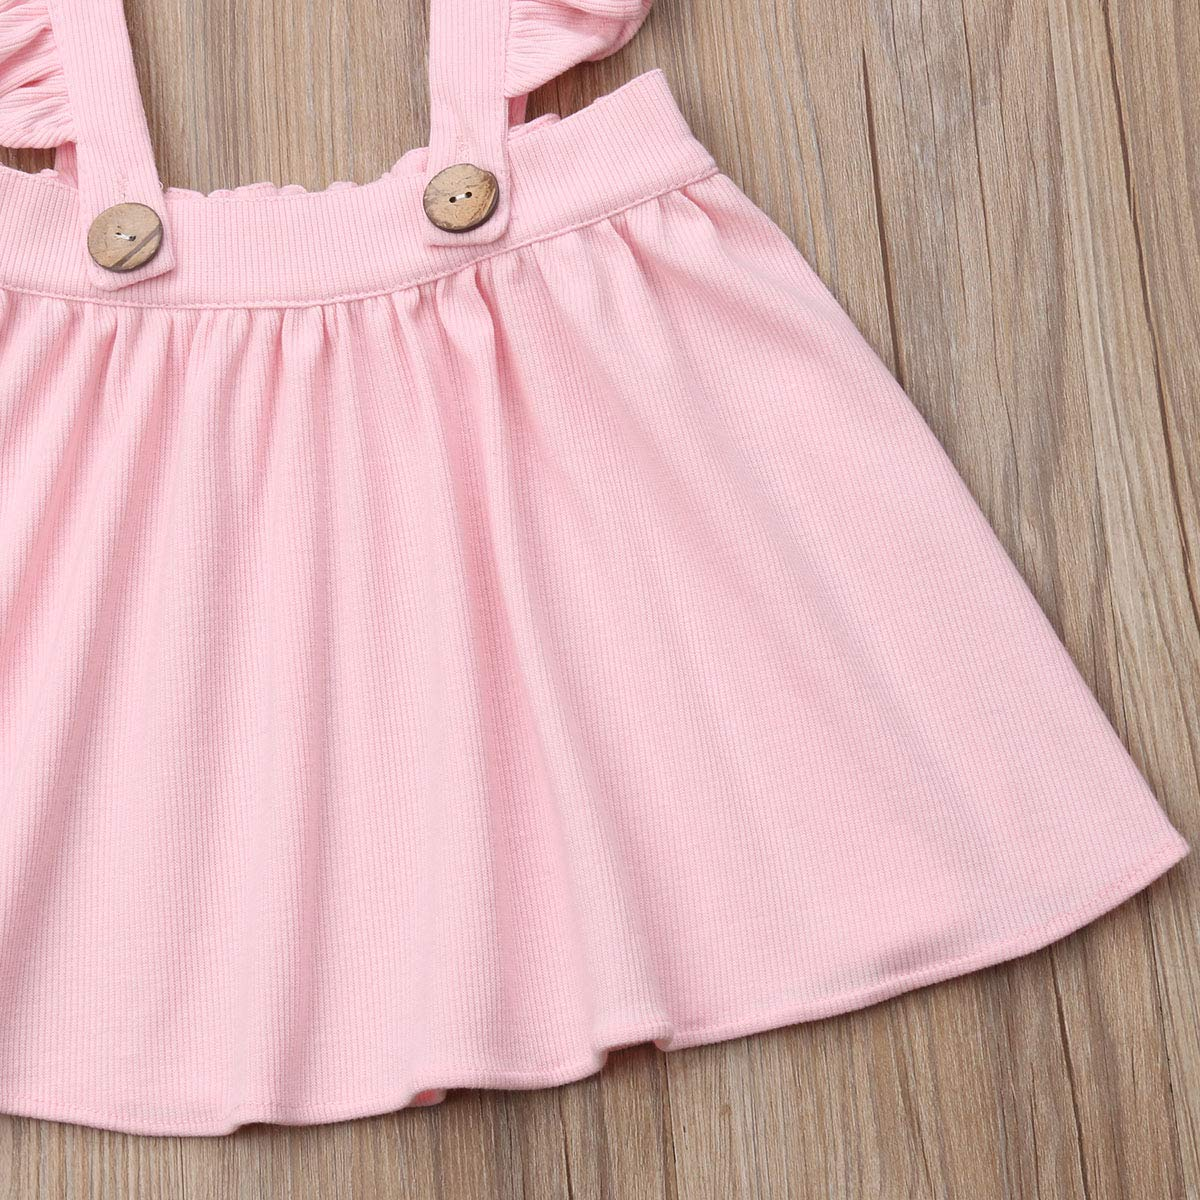 doublebabyjoy Baby Girl One Piece Ruffles Suspender Skirt Overalls Infant Solid Color Sleeveless Backless Dress Outfit 0-5T